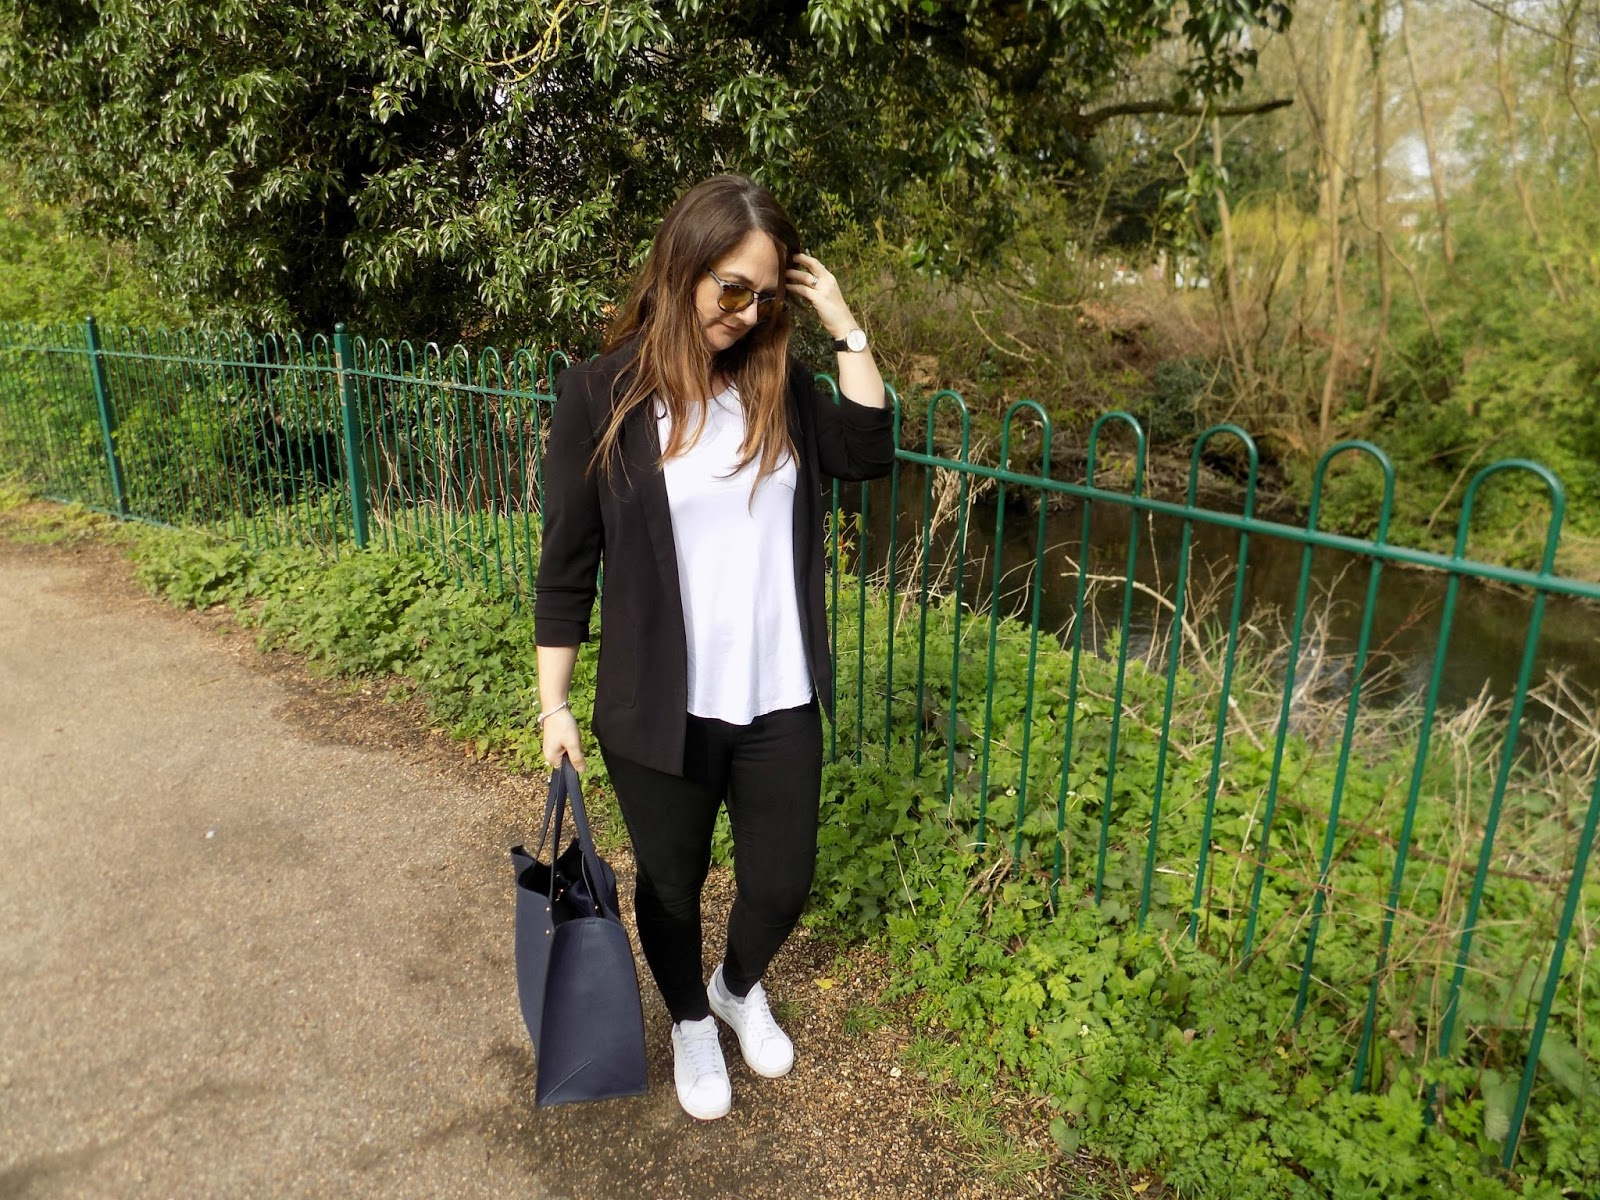 6 things we all need in our wardrobe, black jeans , black blazer, white trainers,handbag, sunglasses